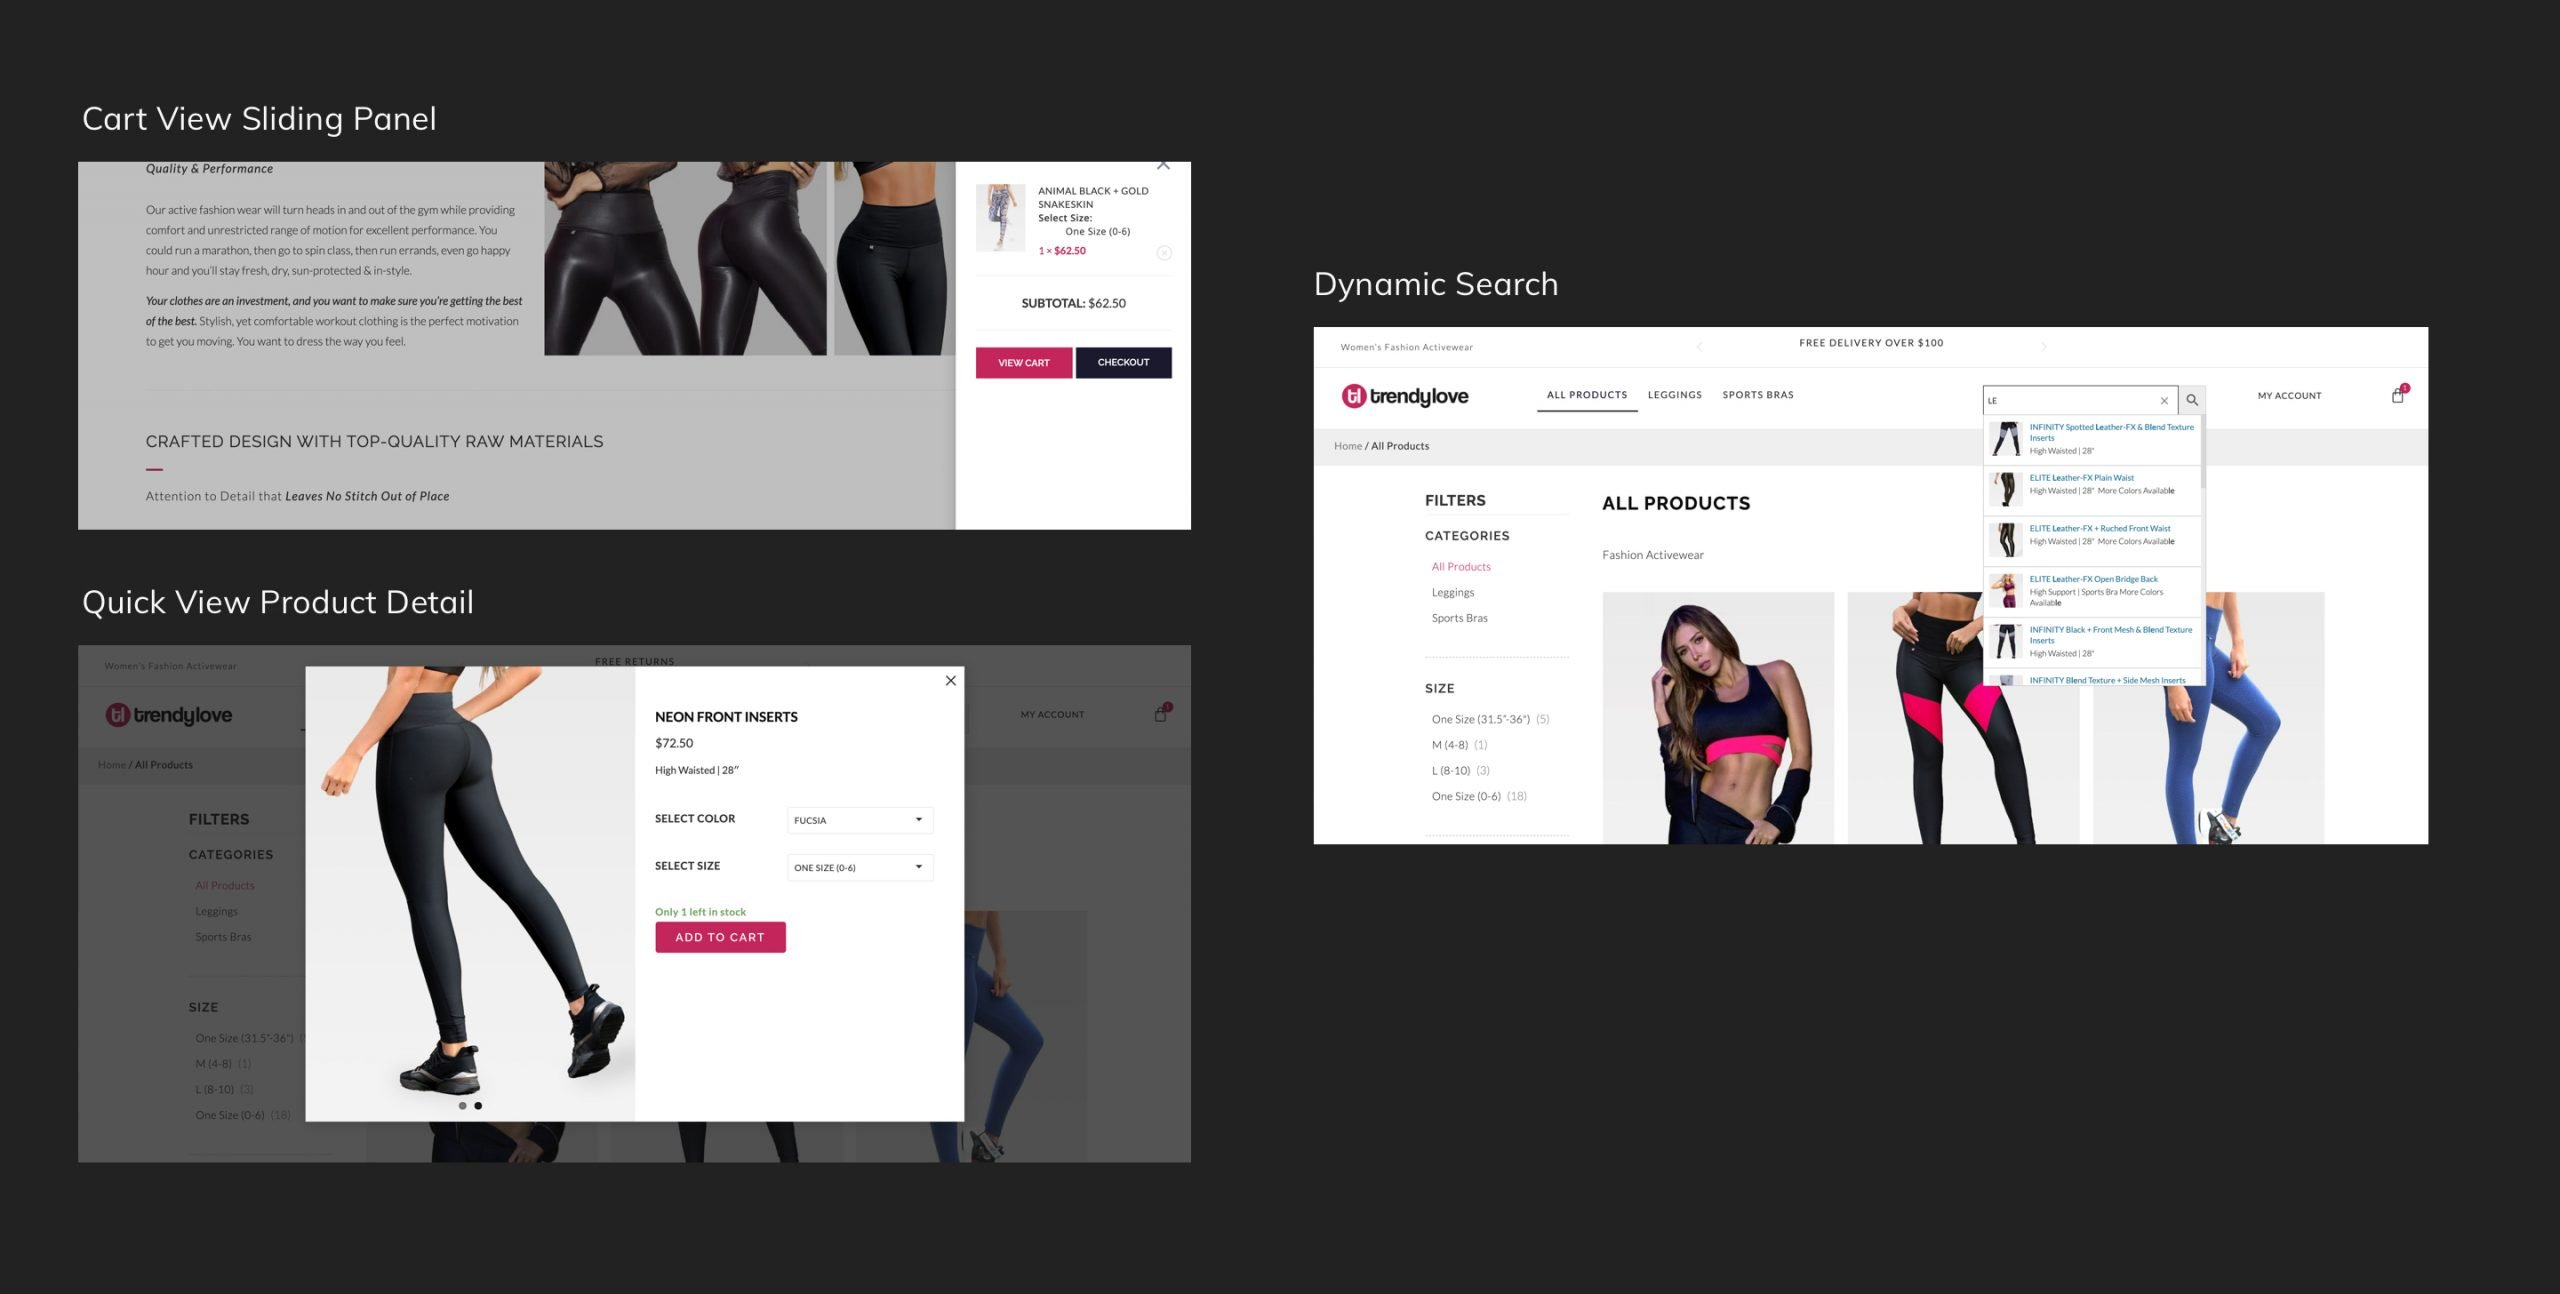 Retail Shopping Cart Search and Product Detail